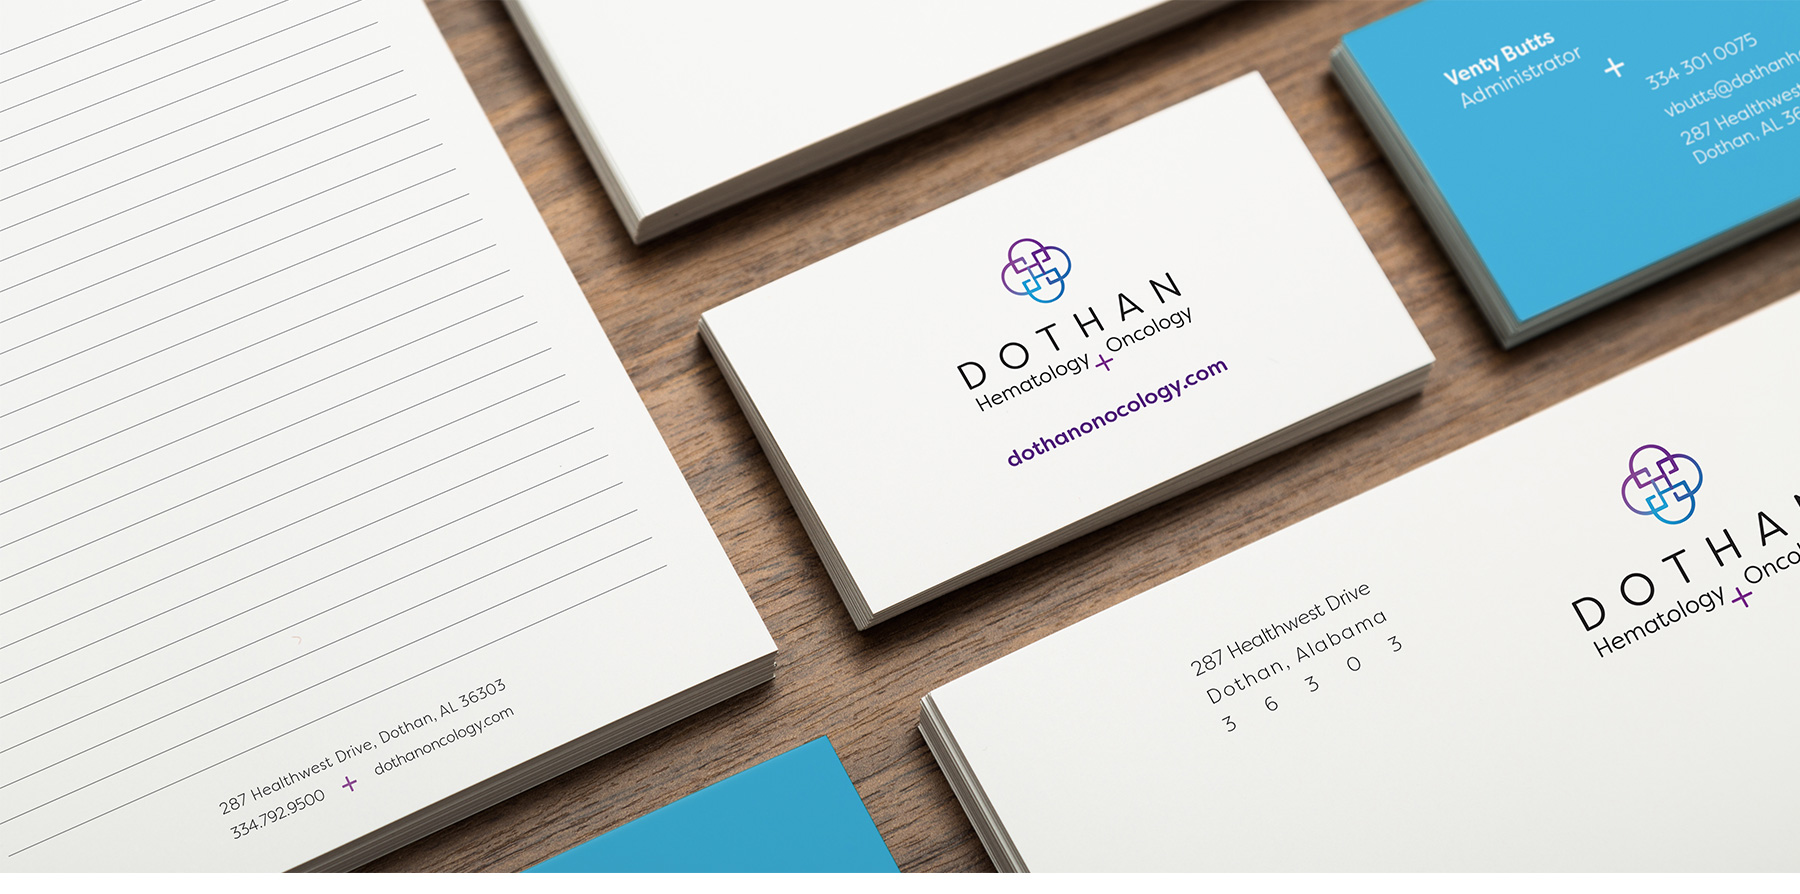 dothan hematology and oncology stationery design